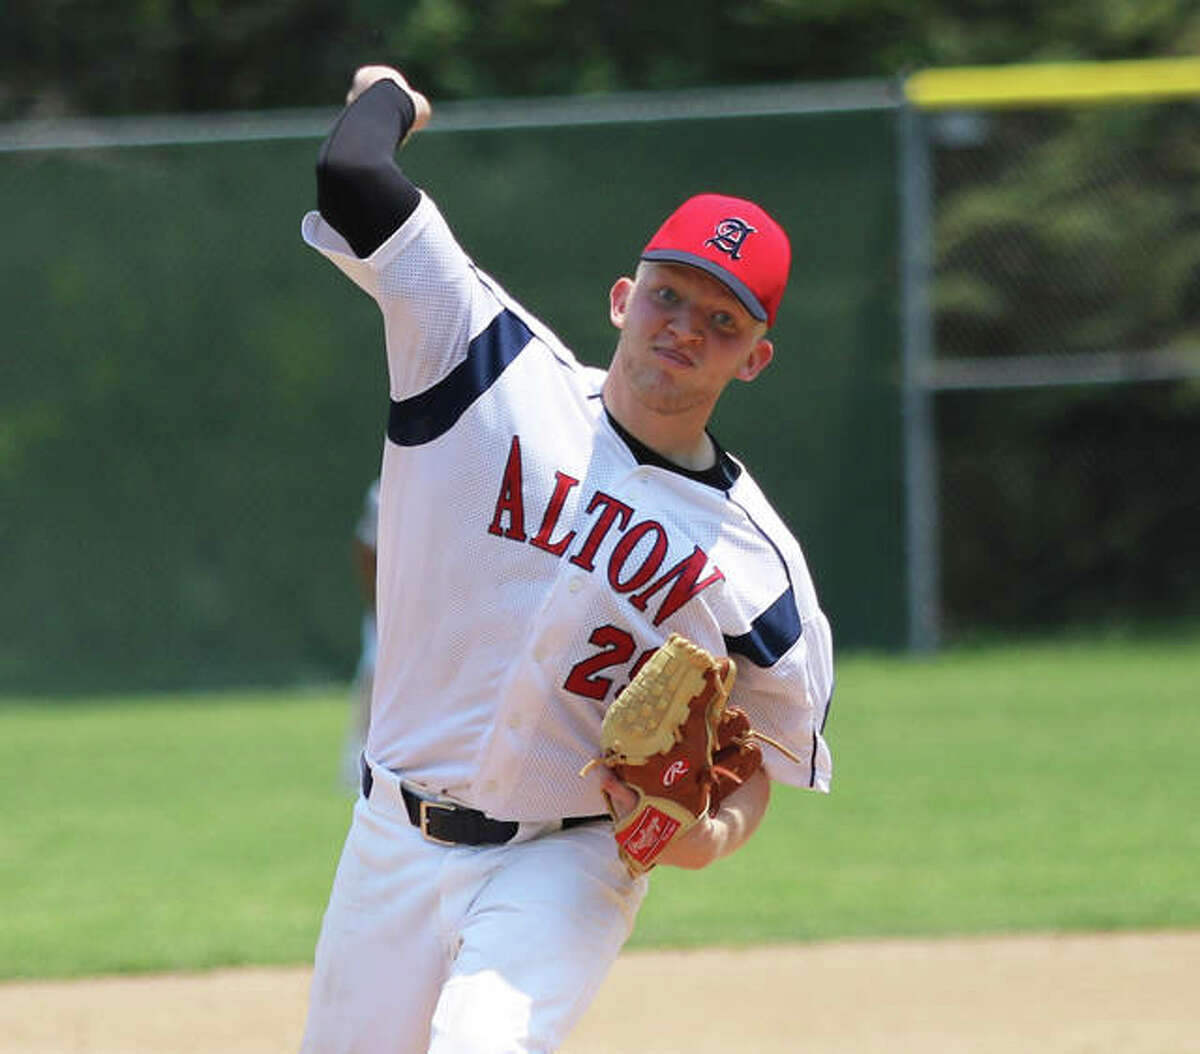 Alton Legion's Brady Salzman, a Southwestern High graduate, delivers a pitch Sunday against Highland at Moody Park in Fairview Heights.